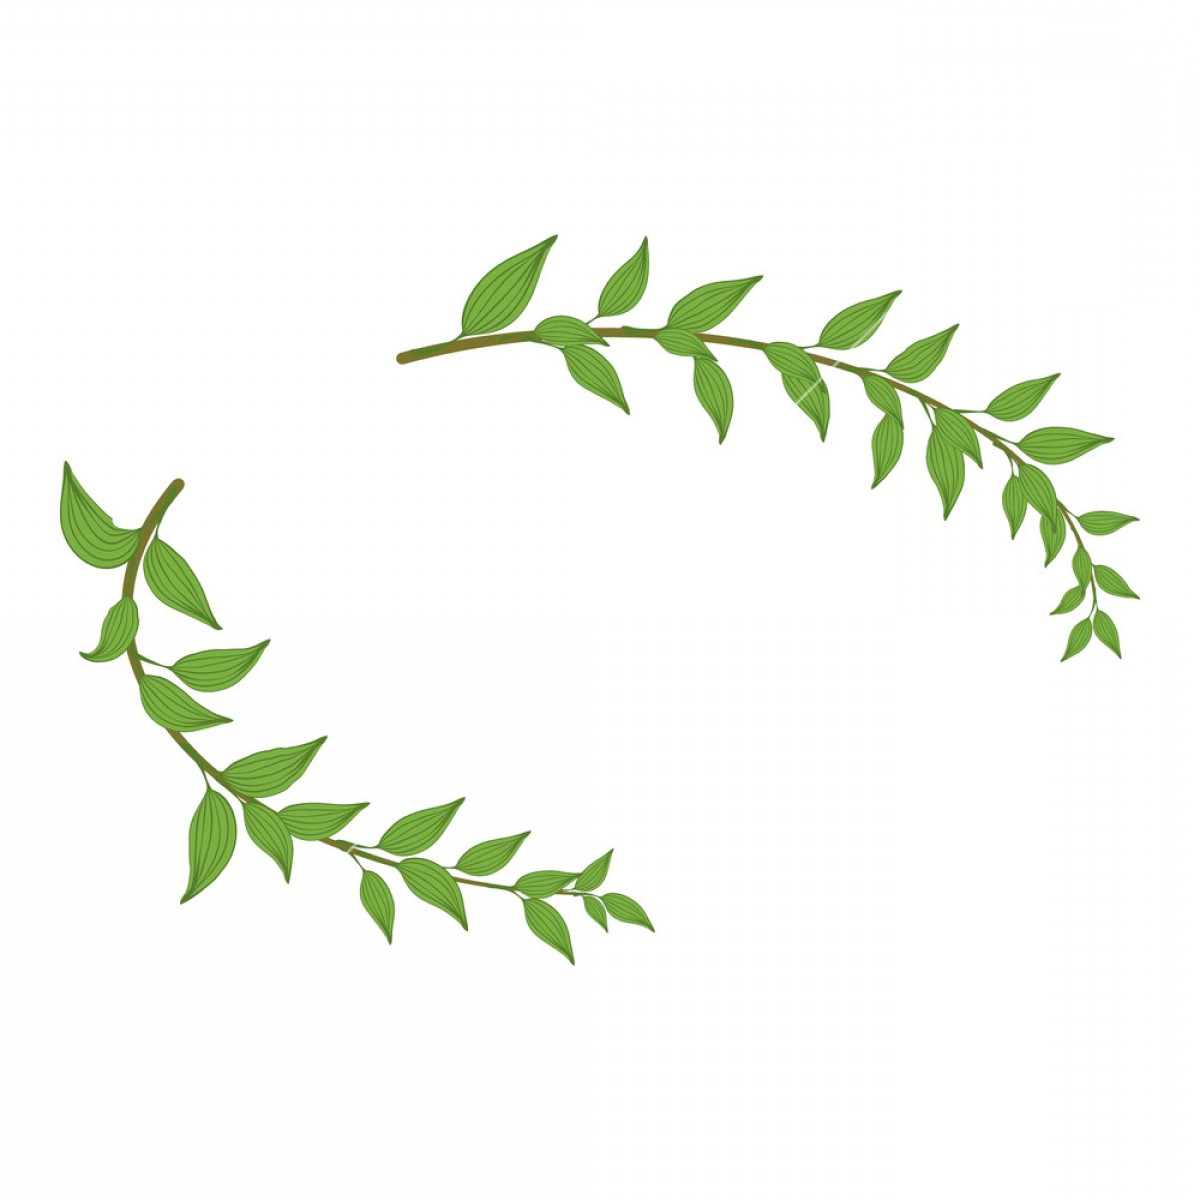 Floral Laurel Wreath Vector: Floral Wreath Icon Isometric Illustration Of Floral Wreath Vector Icon For Web Bgddltpxjogvnhq